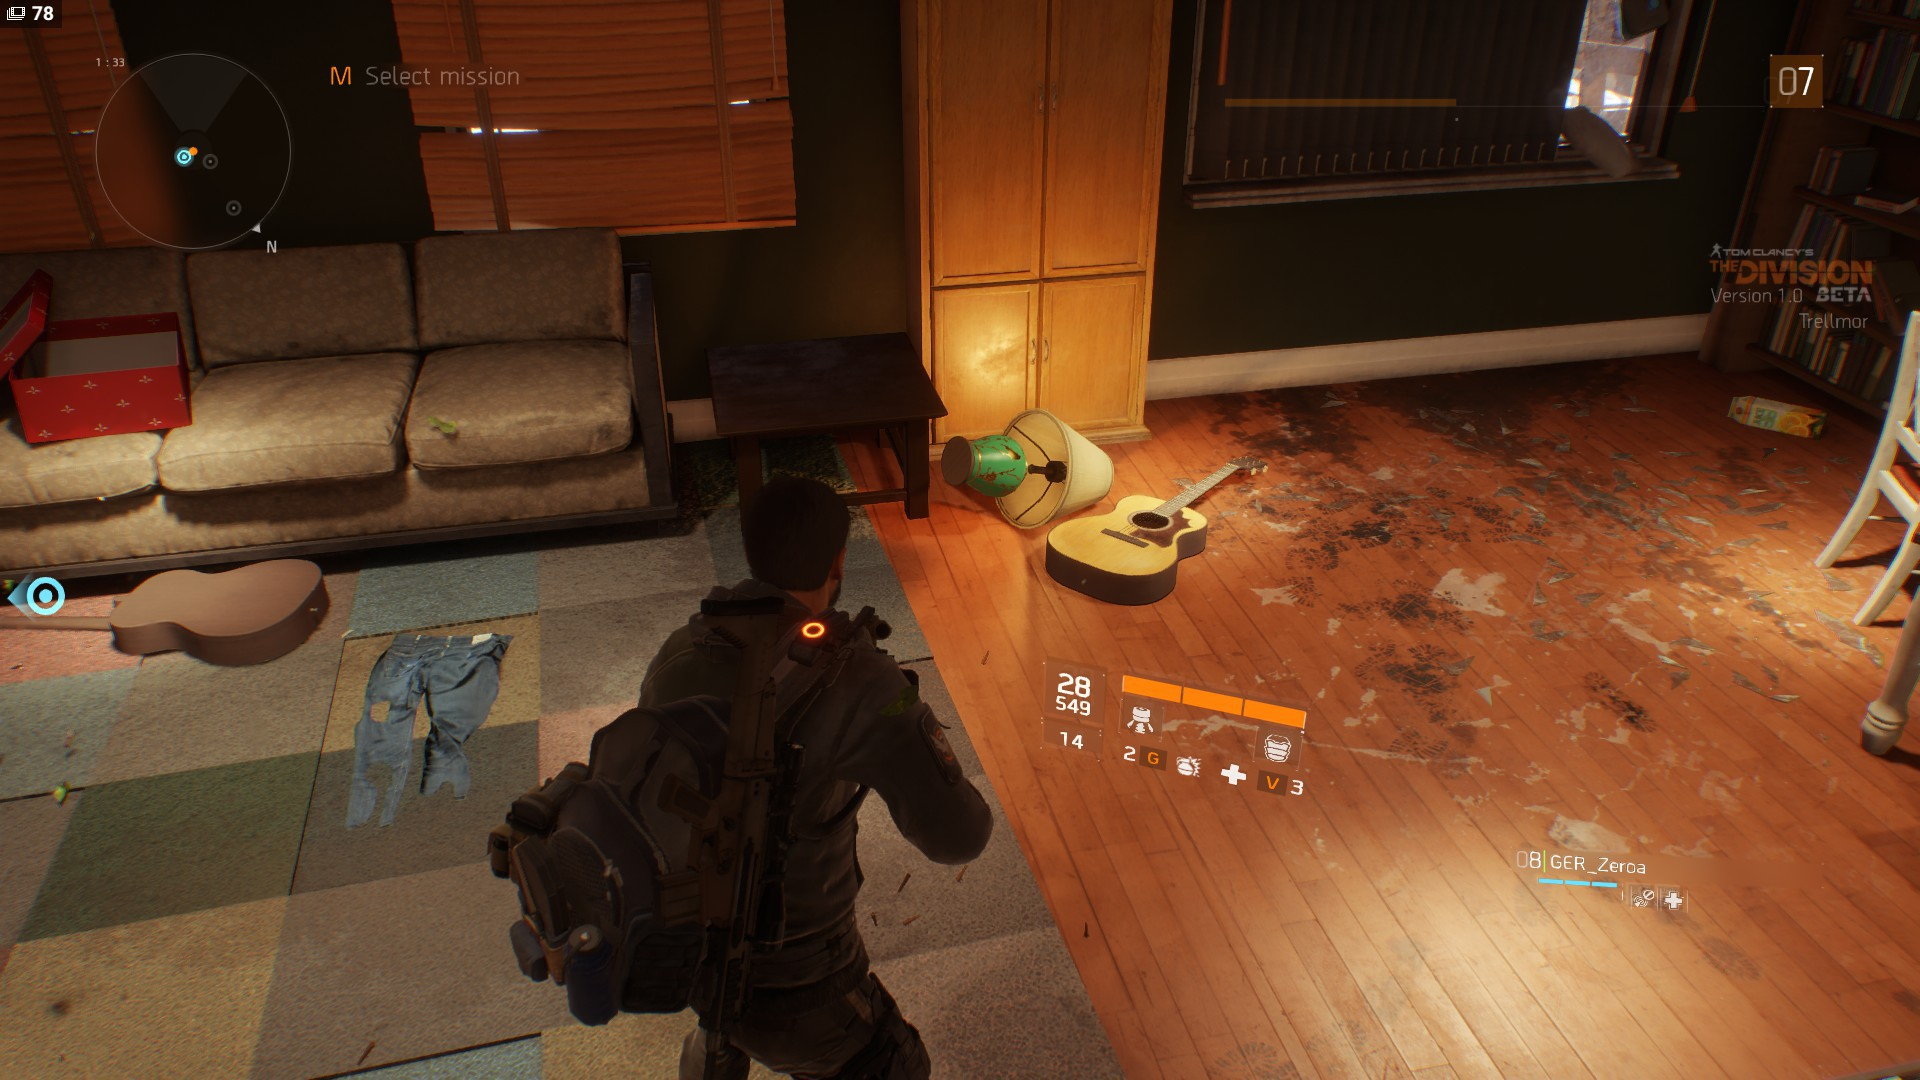 Tom Clancy's The Division Beta2016-1-30-19-47-43.jpg